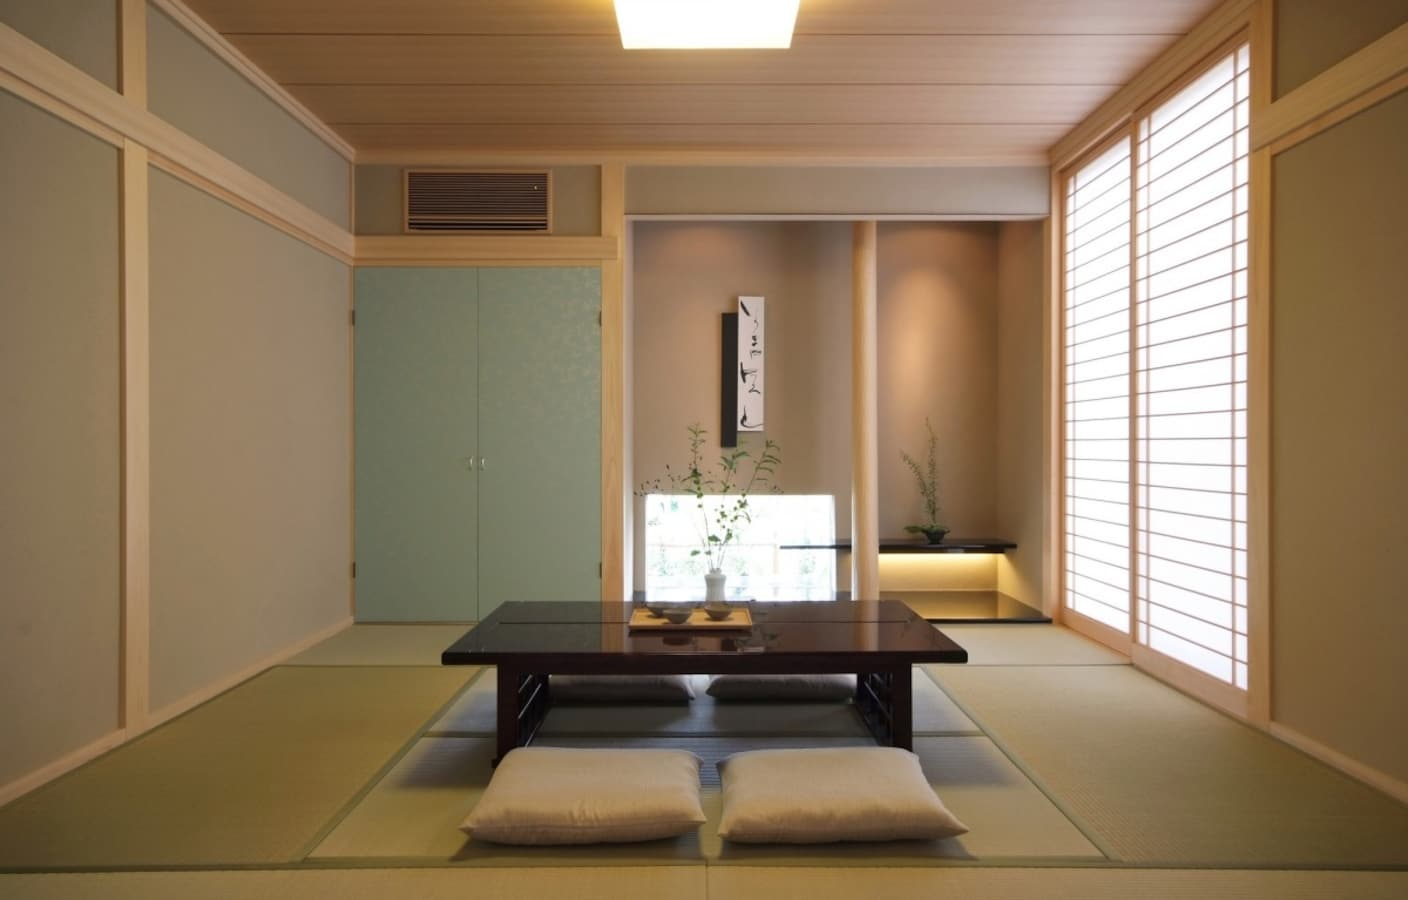 Glean the secrets of japanese interior design all about for Japanese interior design